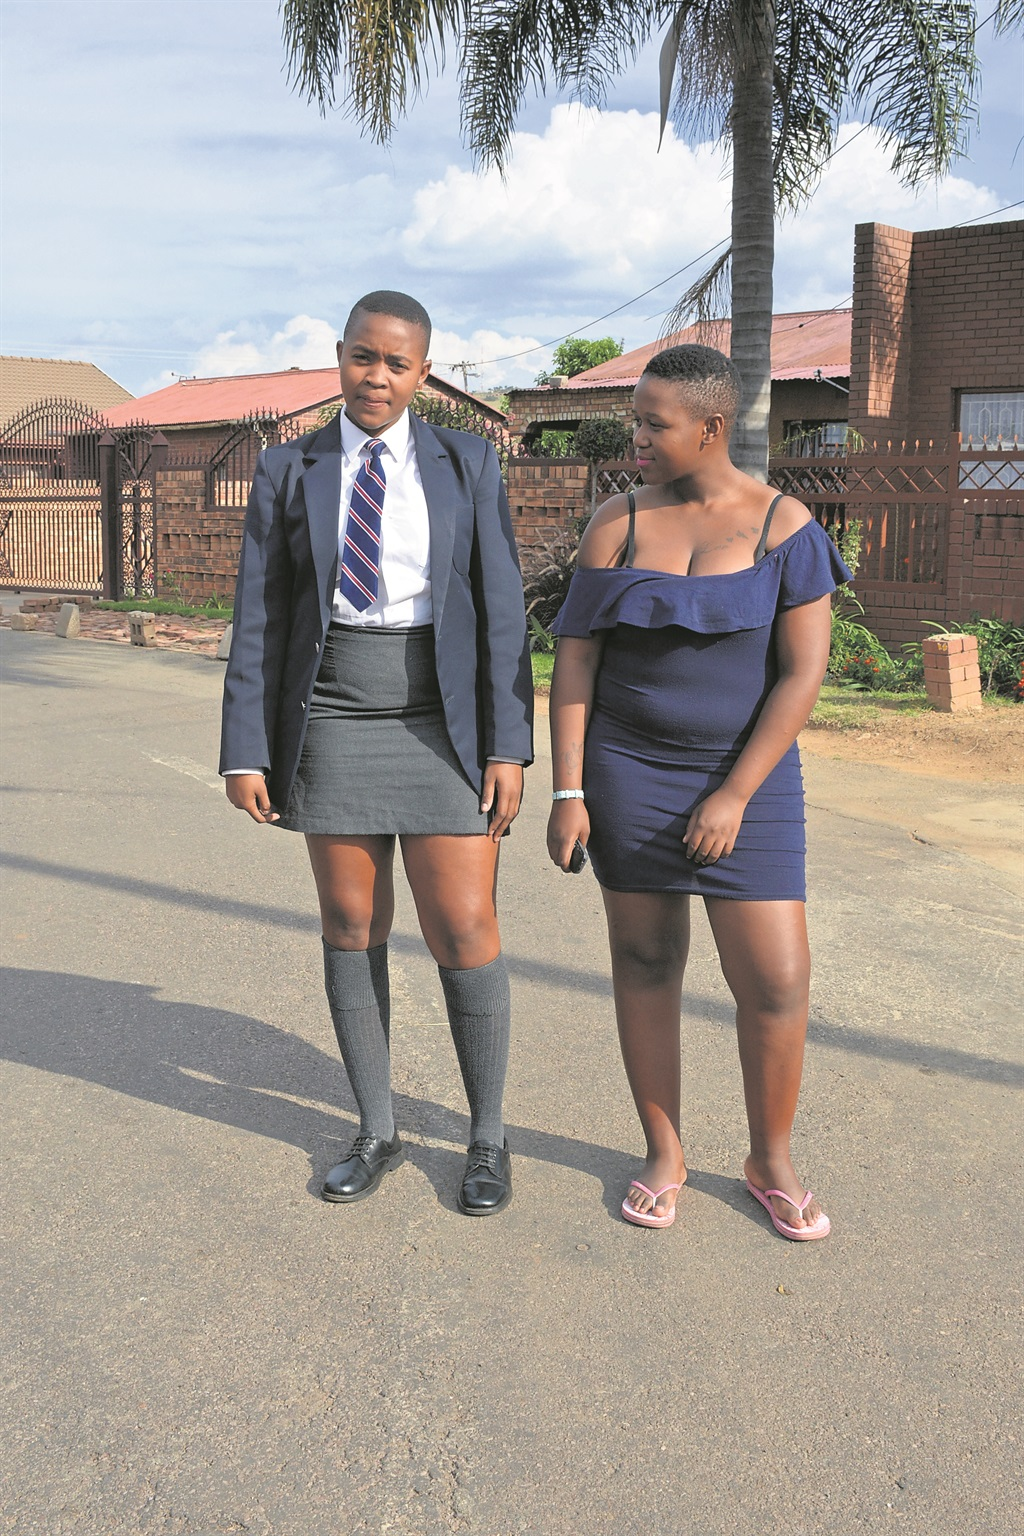 Student Thrown Out Of Class For Being To Sexxy - Mzansi -7724